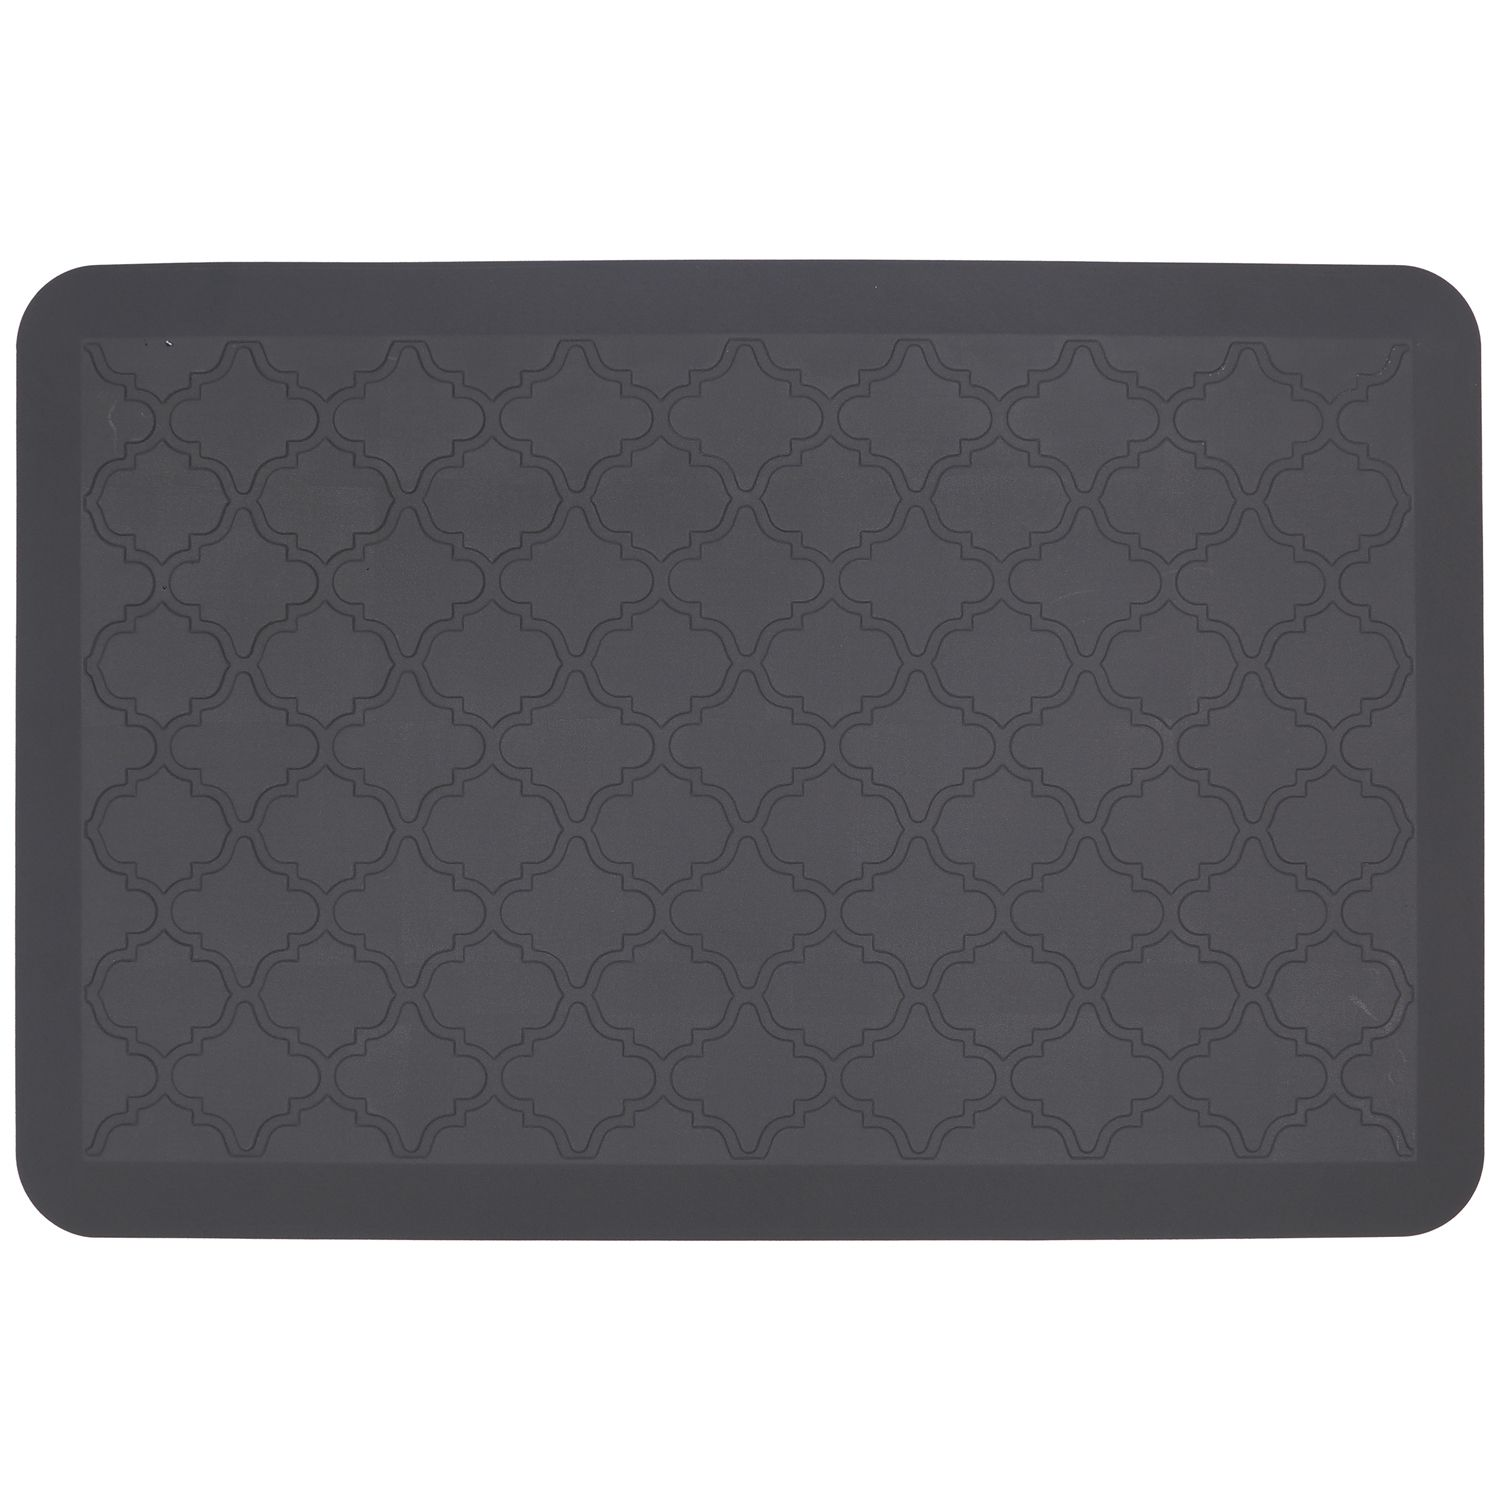 Wonderful Food Network™ Ultra Comfort Lattice Kitchen Mat